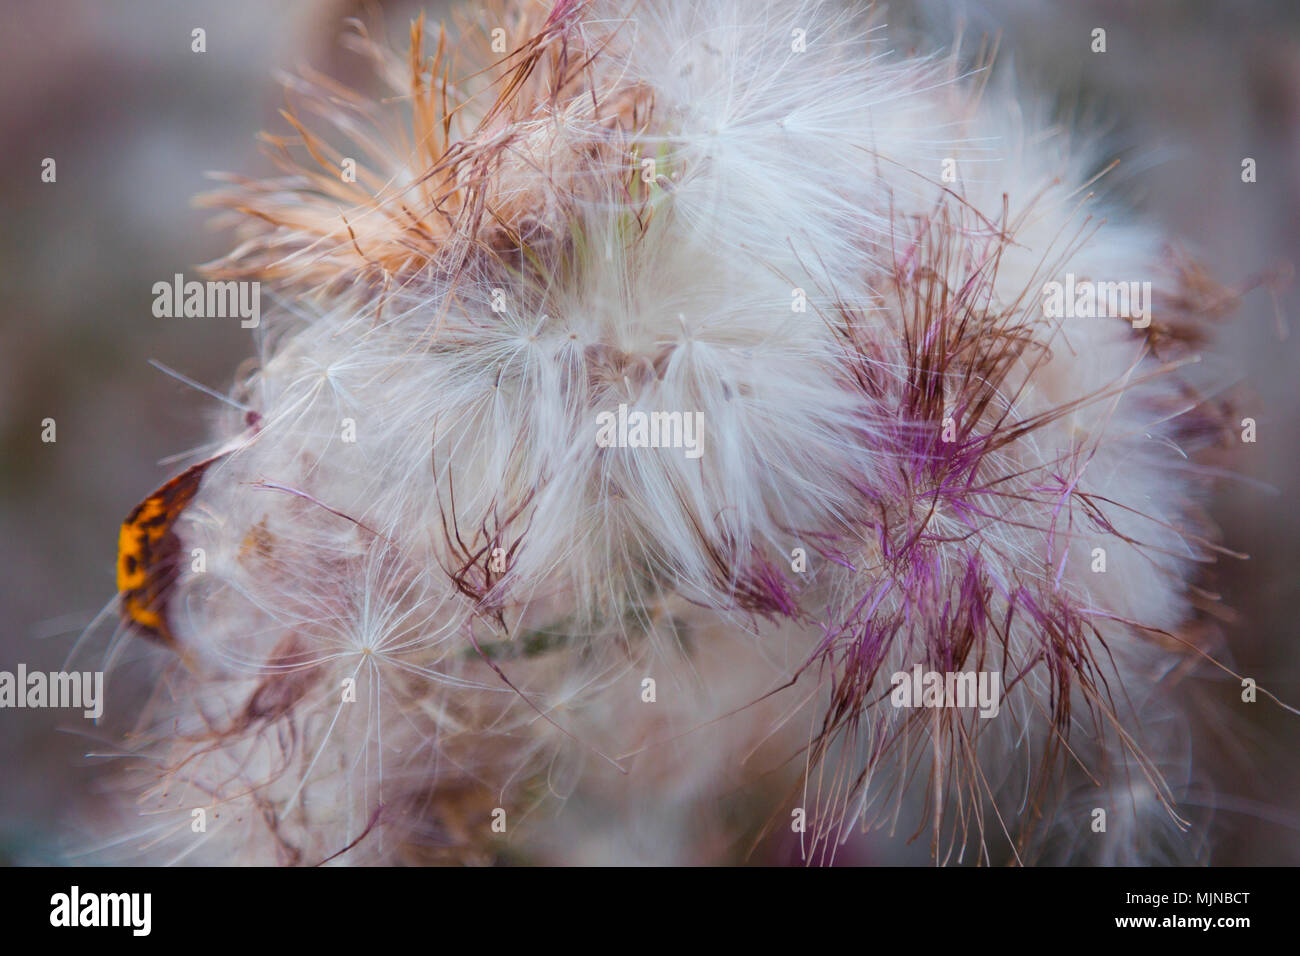 Dried thistle flower close-up. Close up of beautiful dry thistle flower in autumn, blurred background. Toned photo. - Stock Image